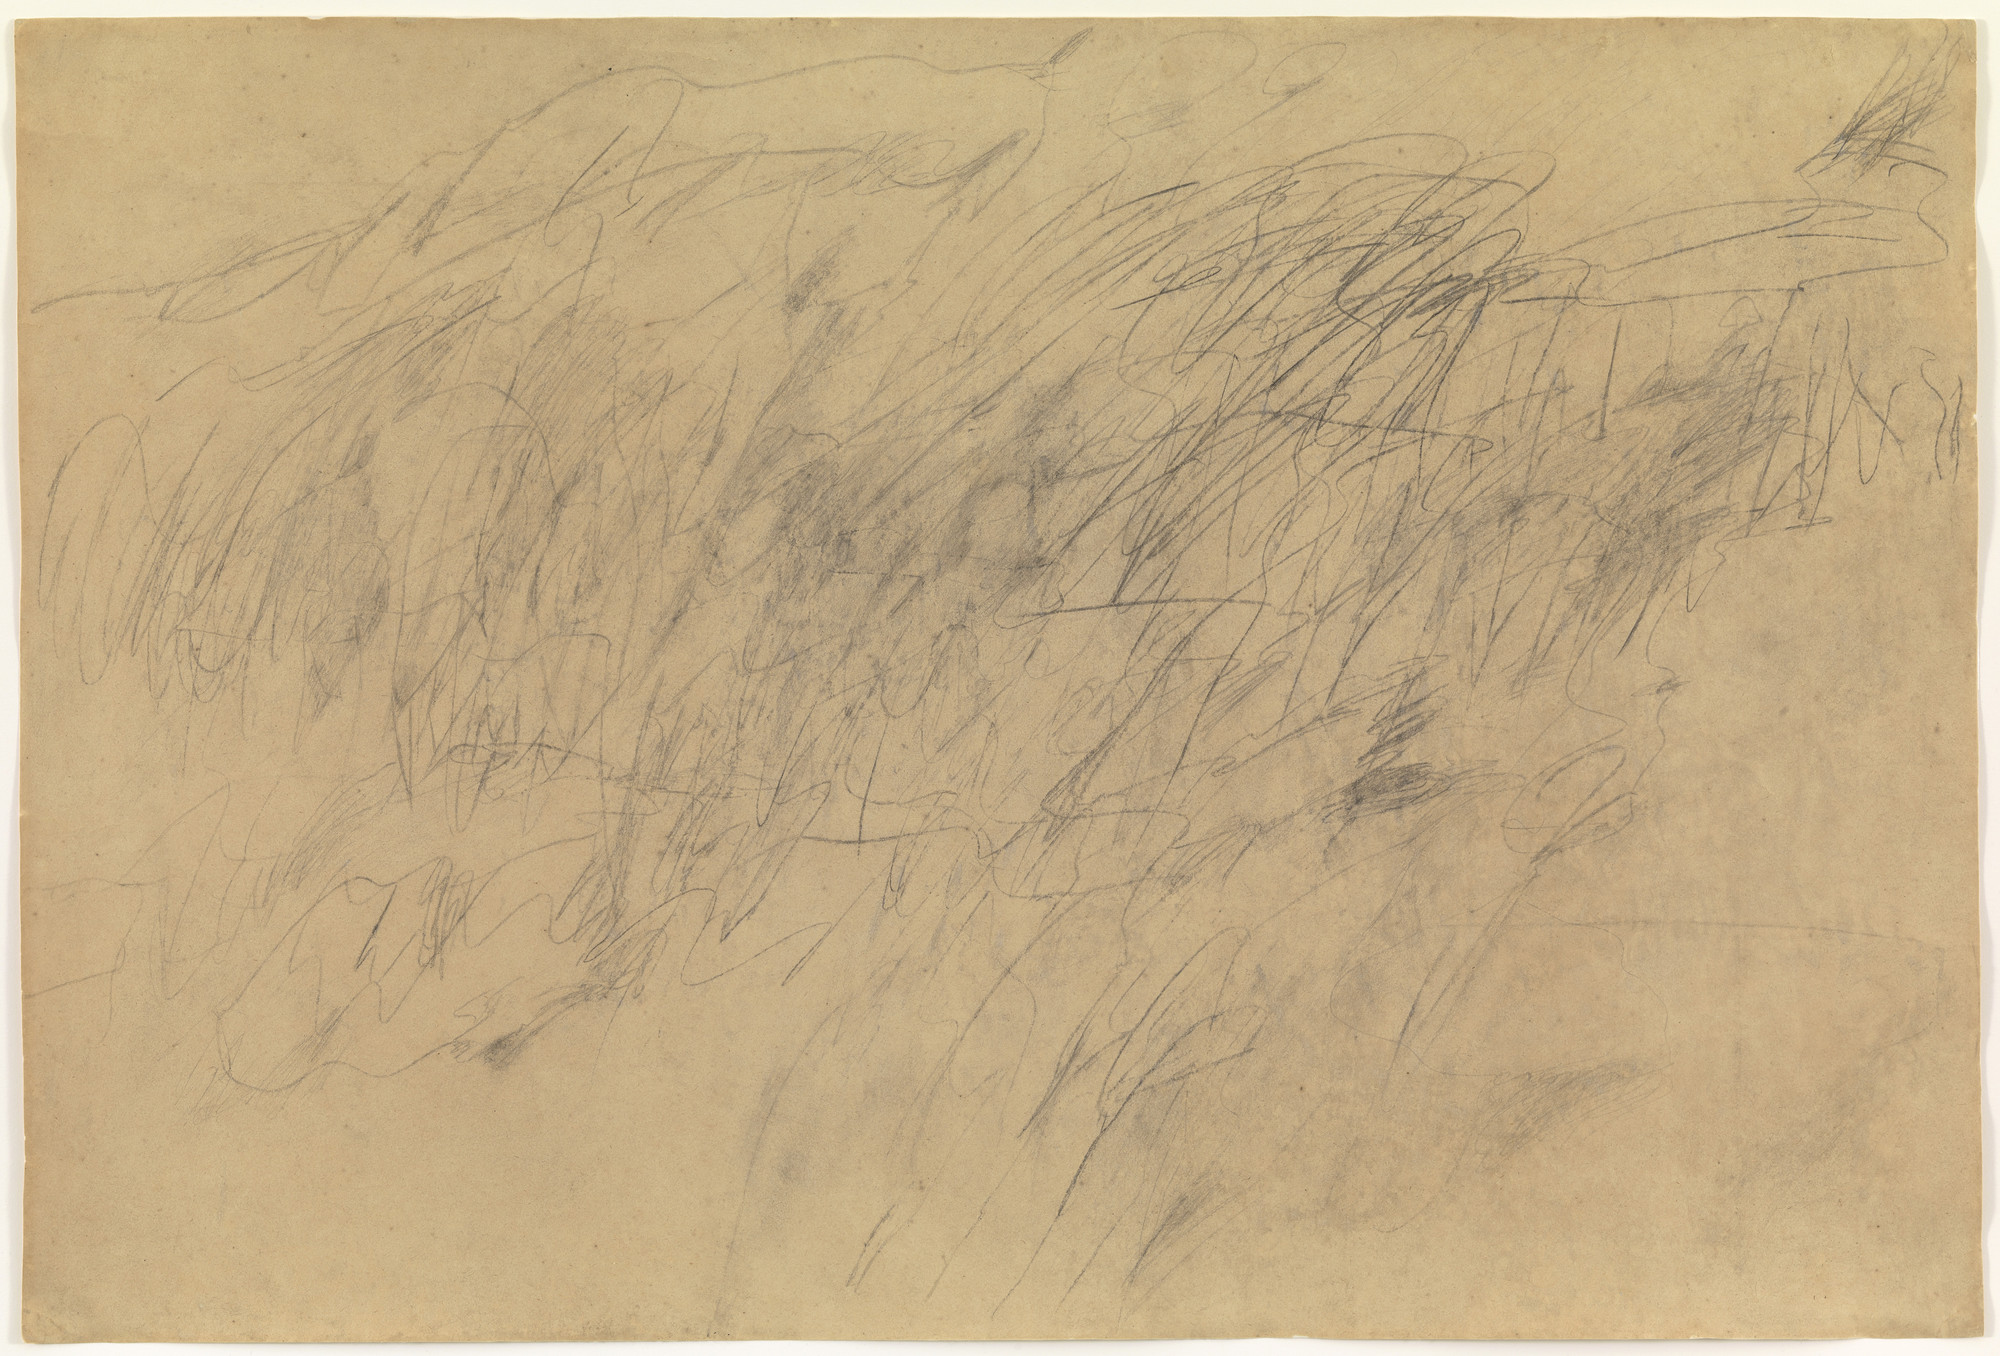 Cy Twombly. Untitled. (1955)